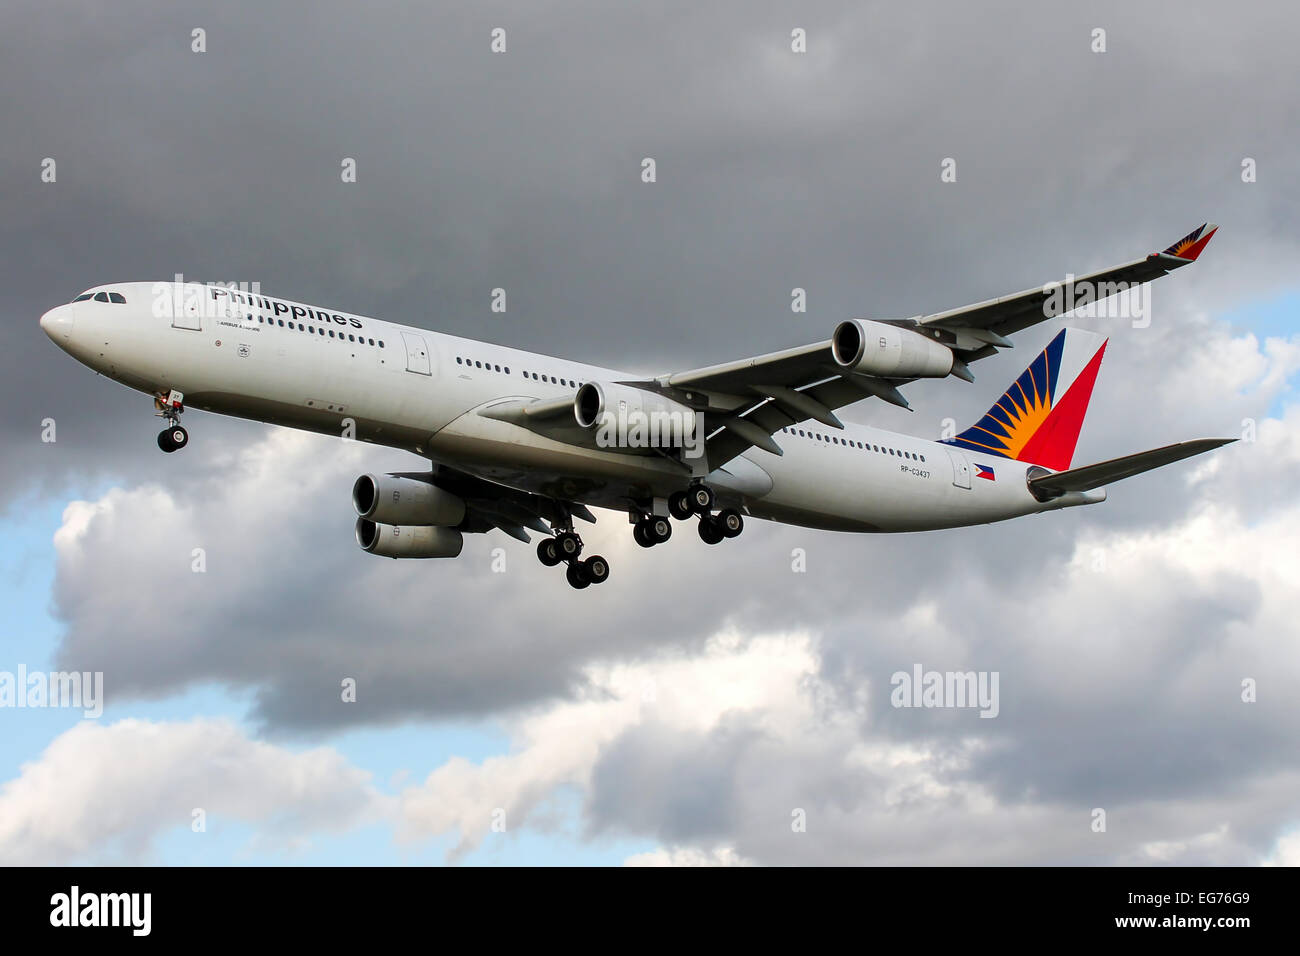 Philippine Airlines Airbus A340-300 approaches runway 27L at London Heathrow airport. - Stock Image